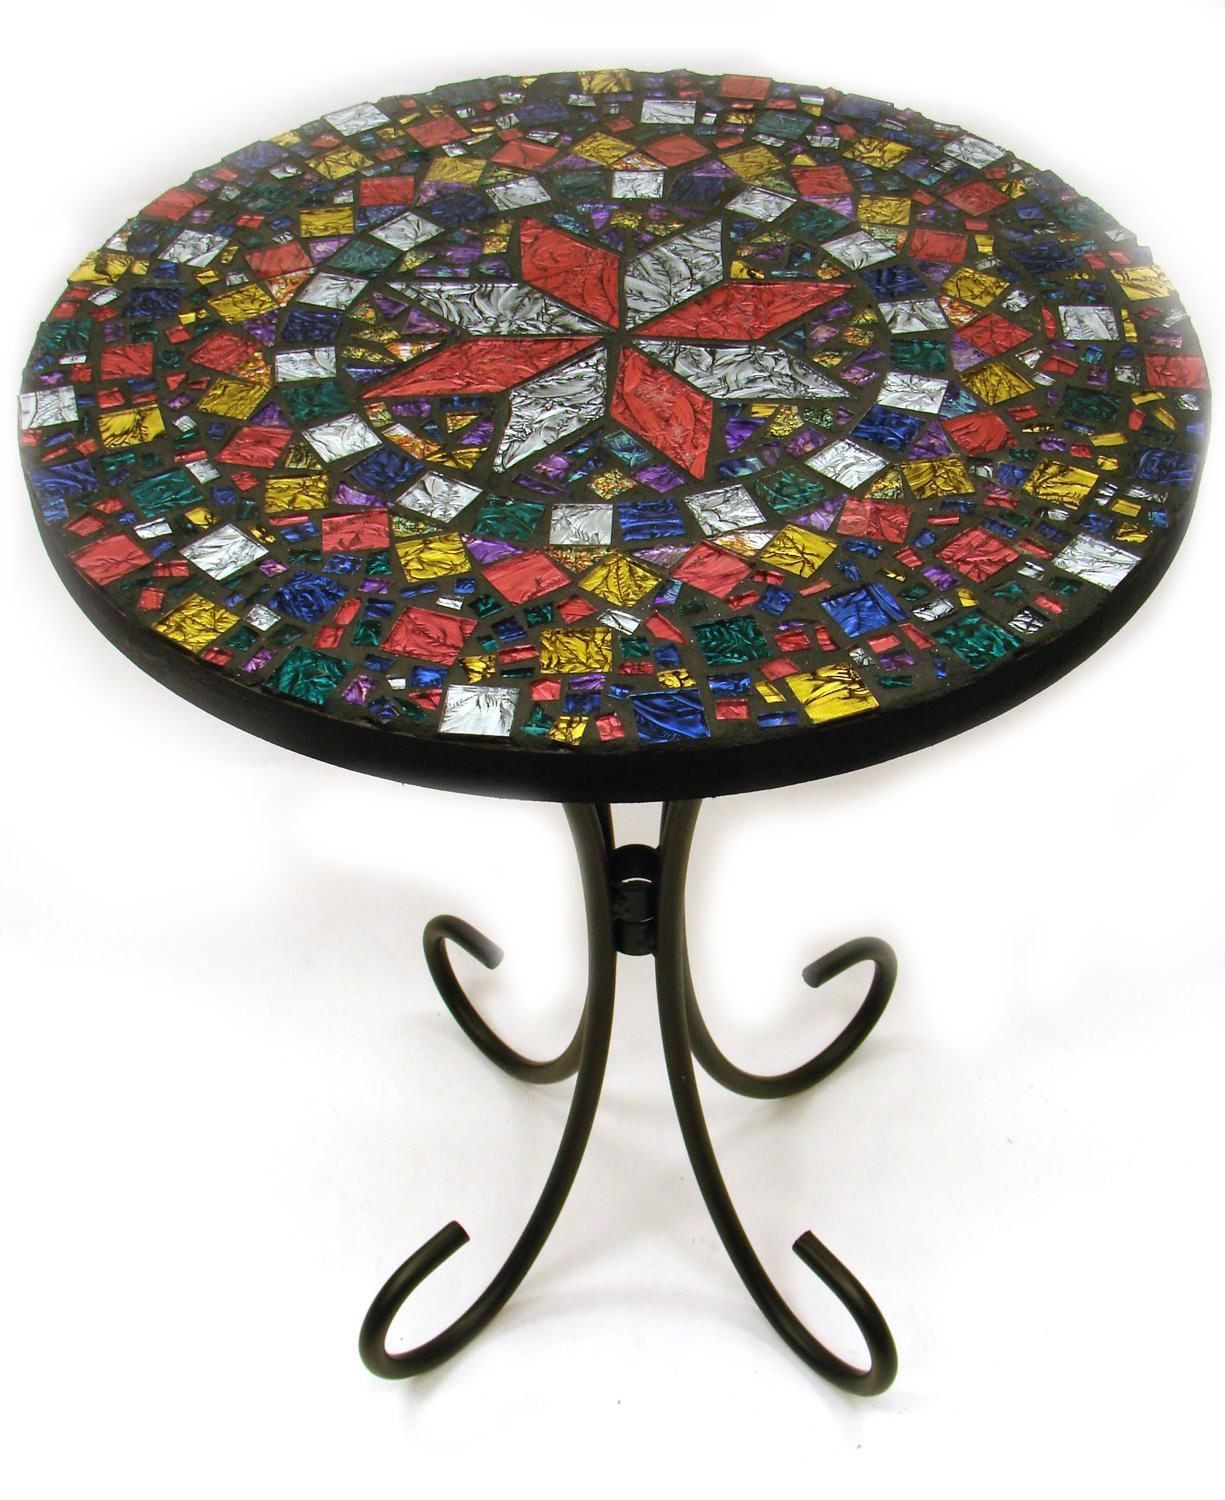 16 Quot Round Mosaic Table Top Items Delphi Glass